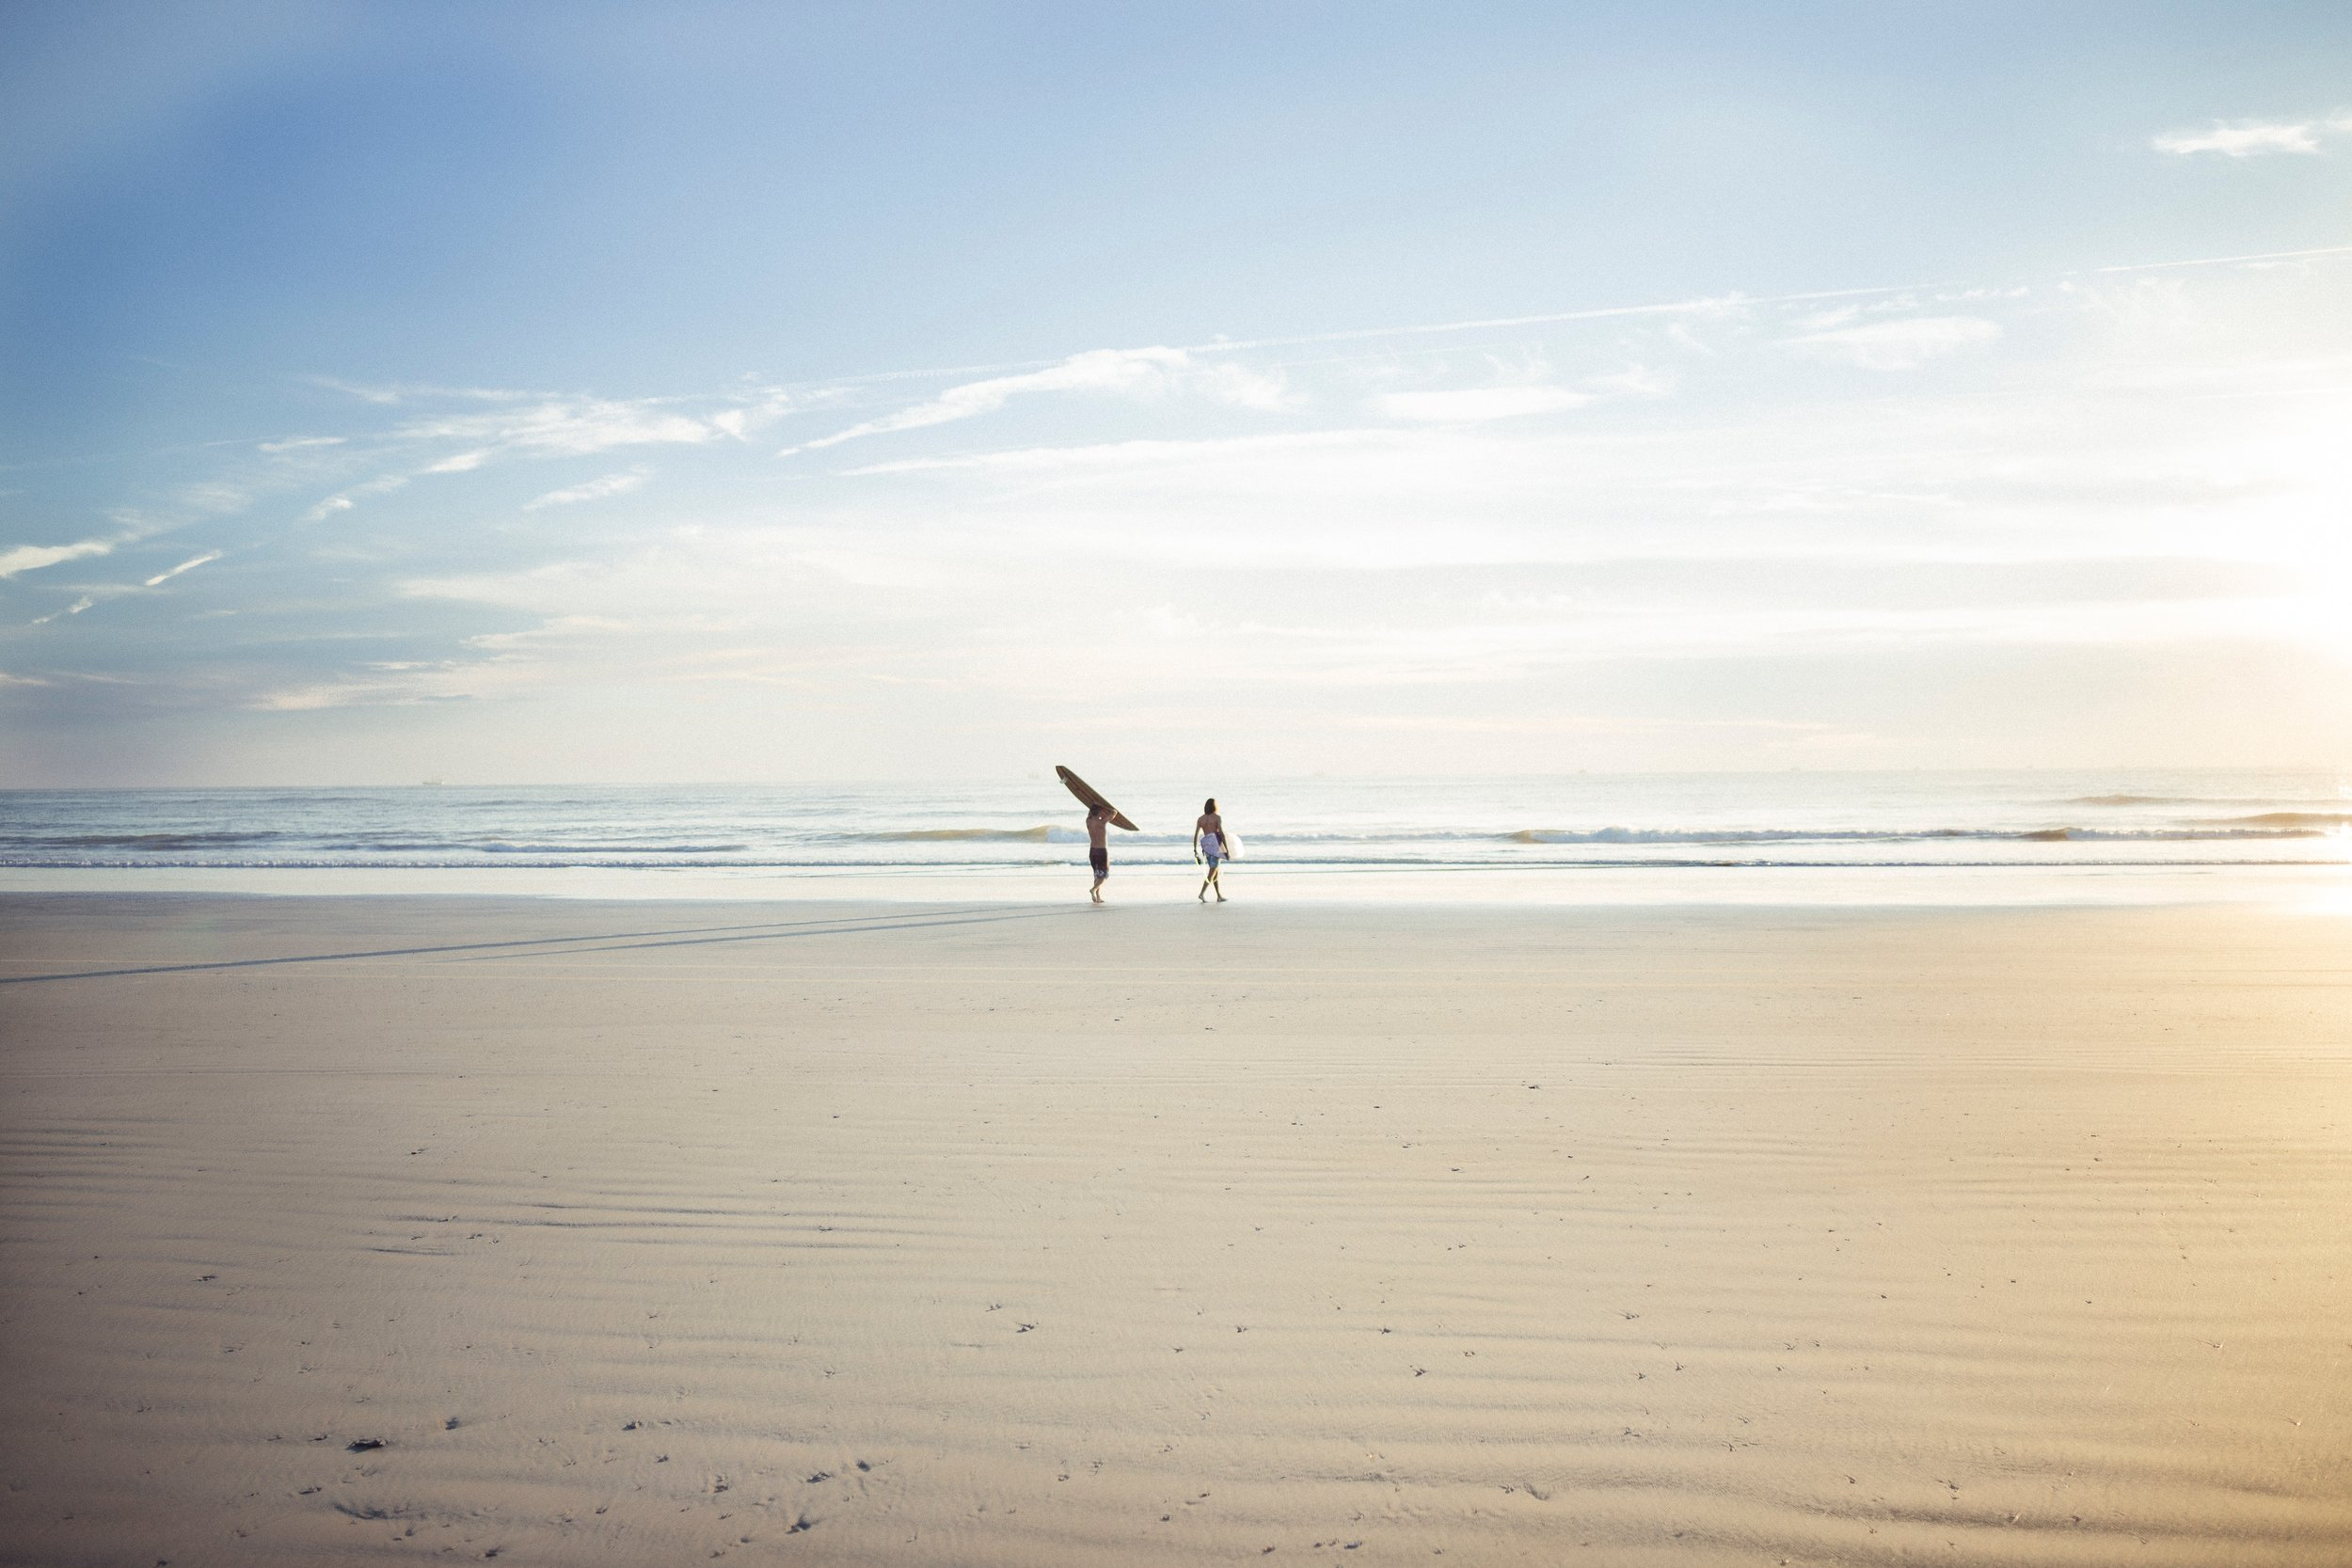 morocco - Ski in the Atlas Mountains and surf in the Atlantic Ocean - experiences that redefine Morocco and North Africa.